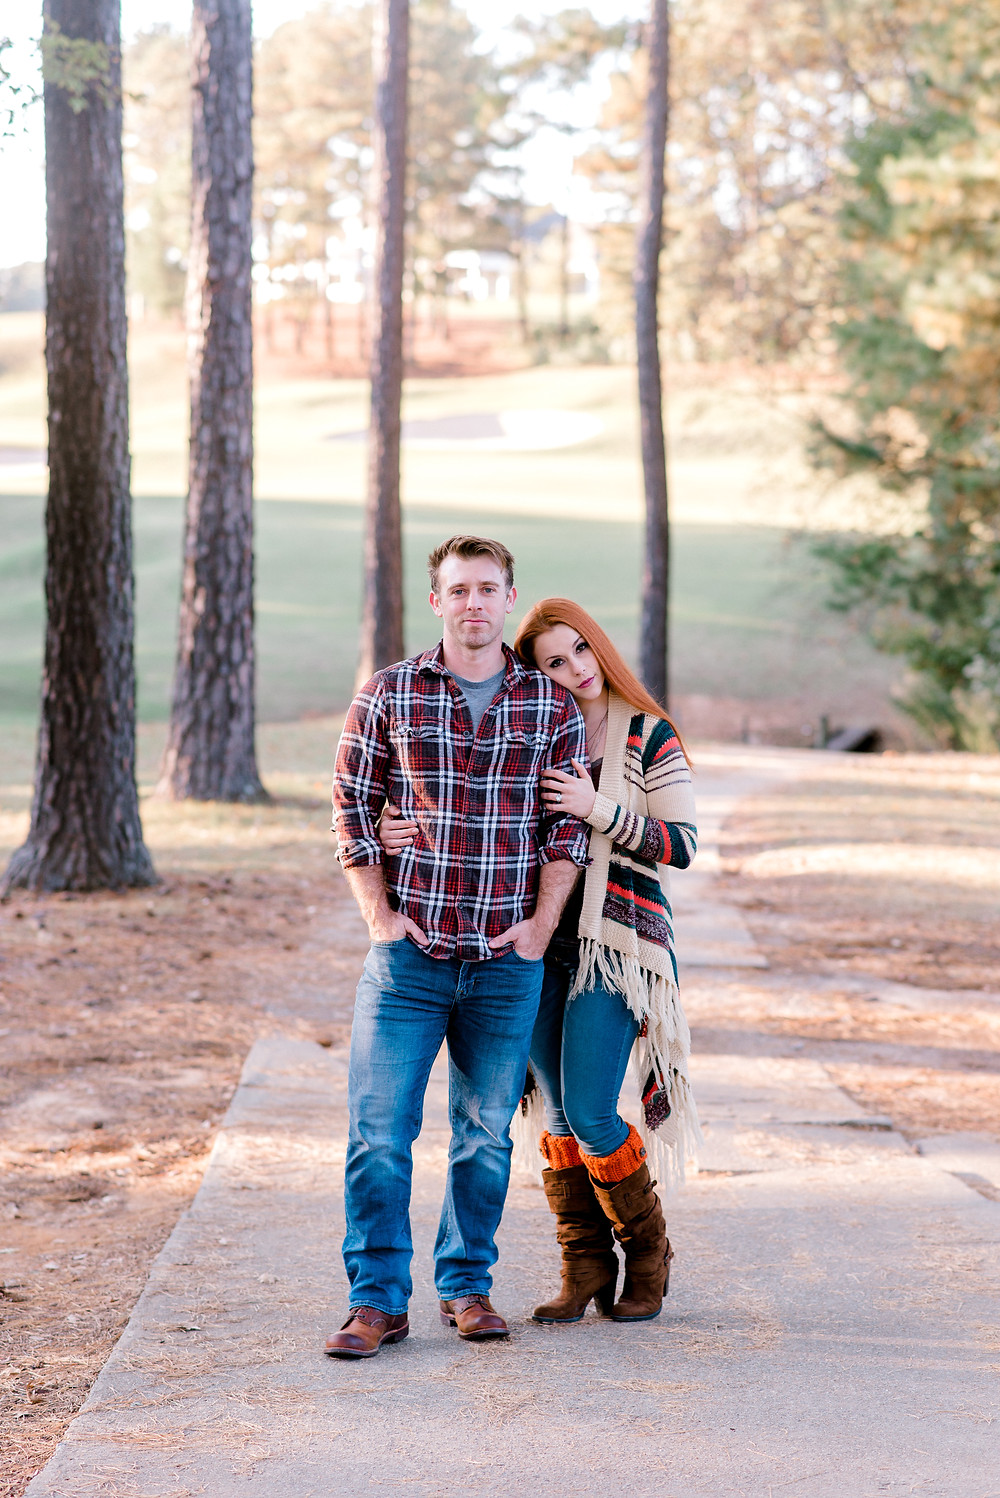 Fine Art engagement photographer serving Columbia, Charleston, Greenville, Charlotte, NC Augusta, Ga, Nashville, TN surrounding areas and worldwide destination weddings and elopements. Fall photos with Nina Bashaw at Cobblestone Golf Club